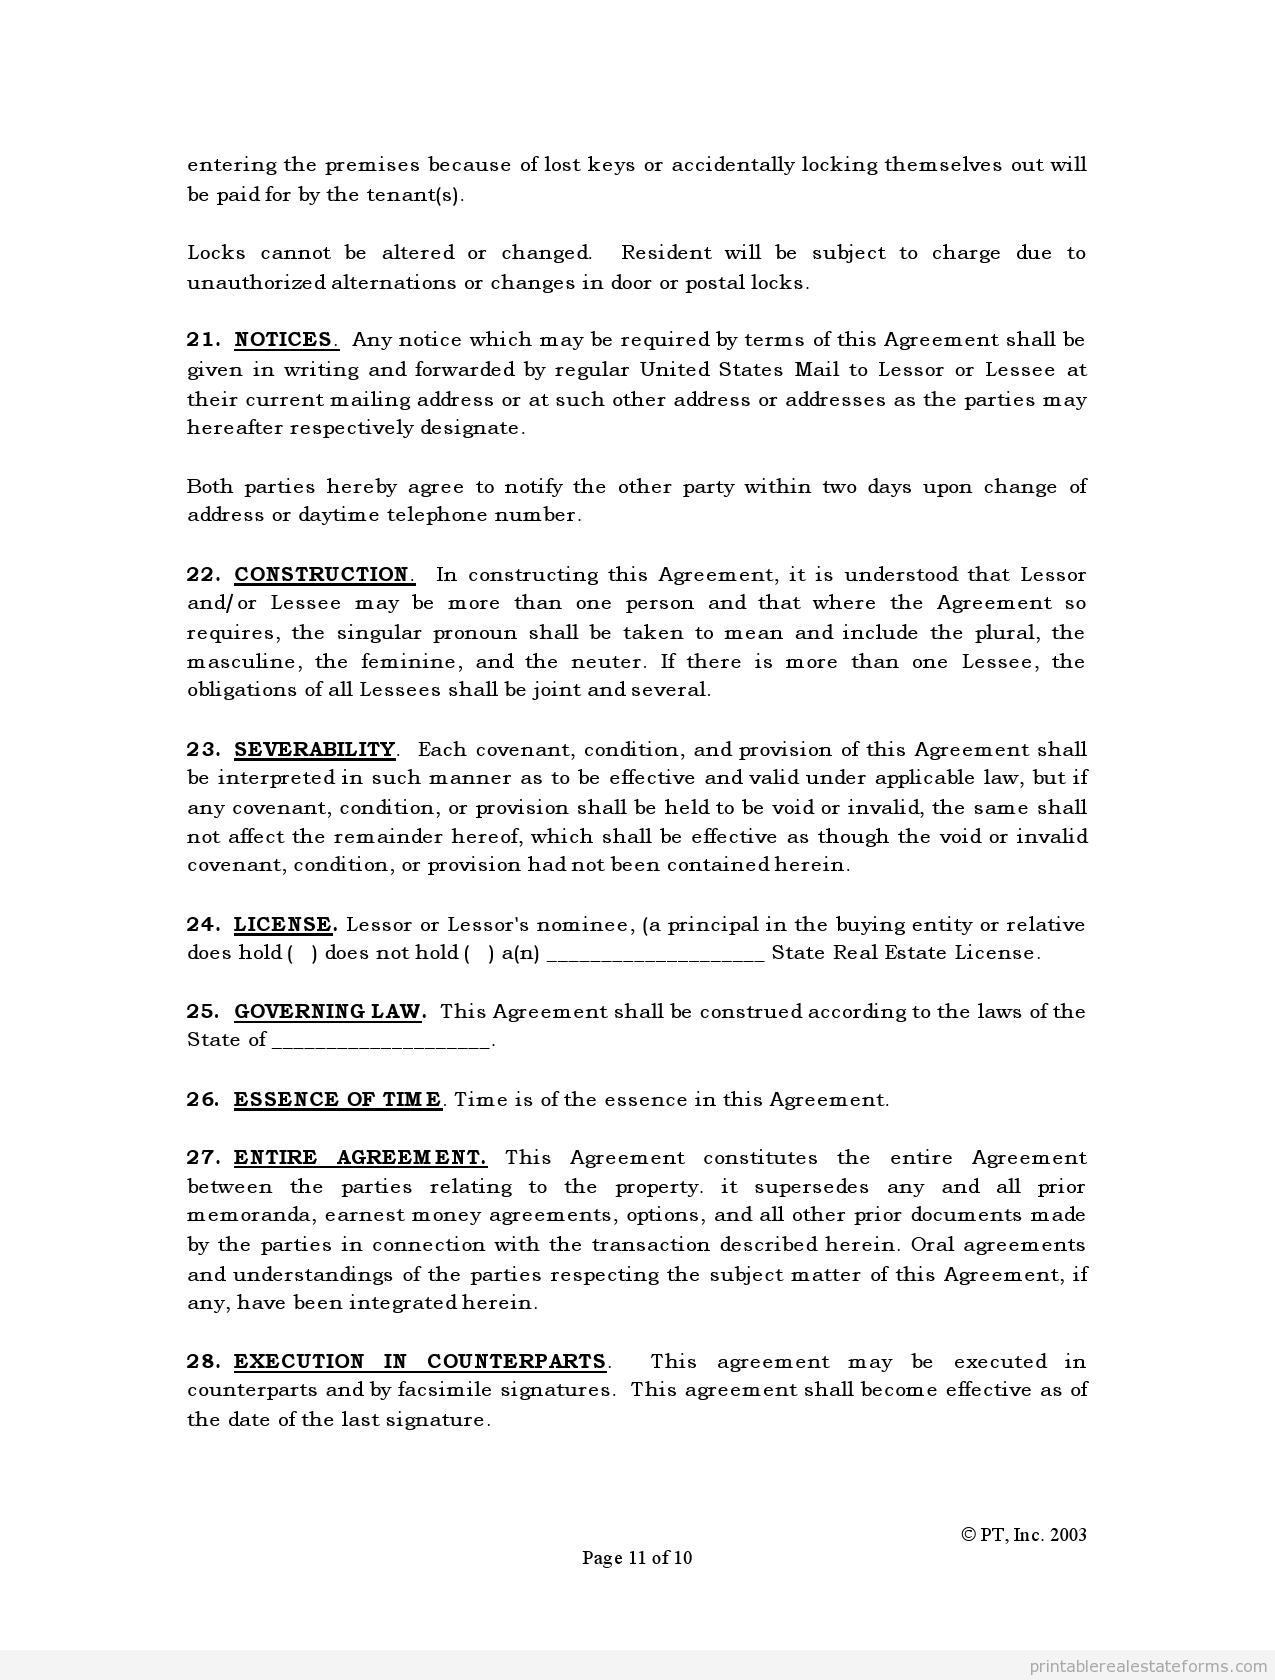 Free Printable Standard Lease Agreement Form  Printable Real